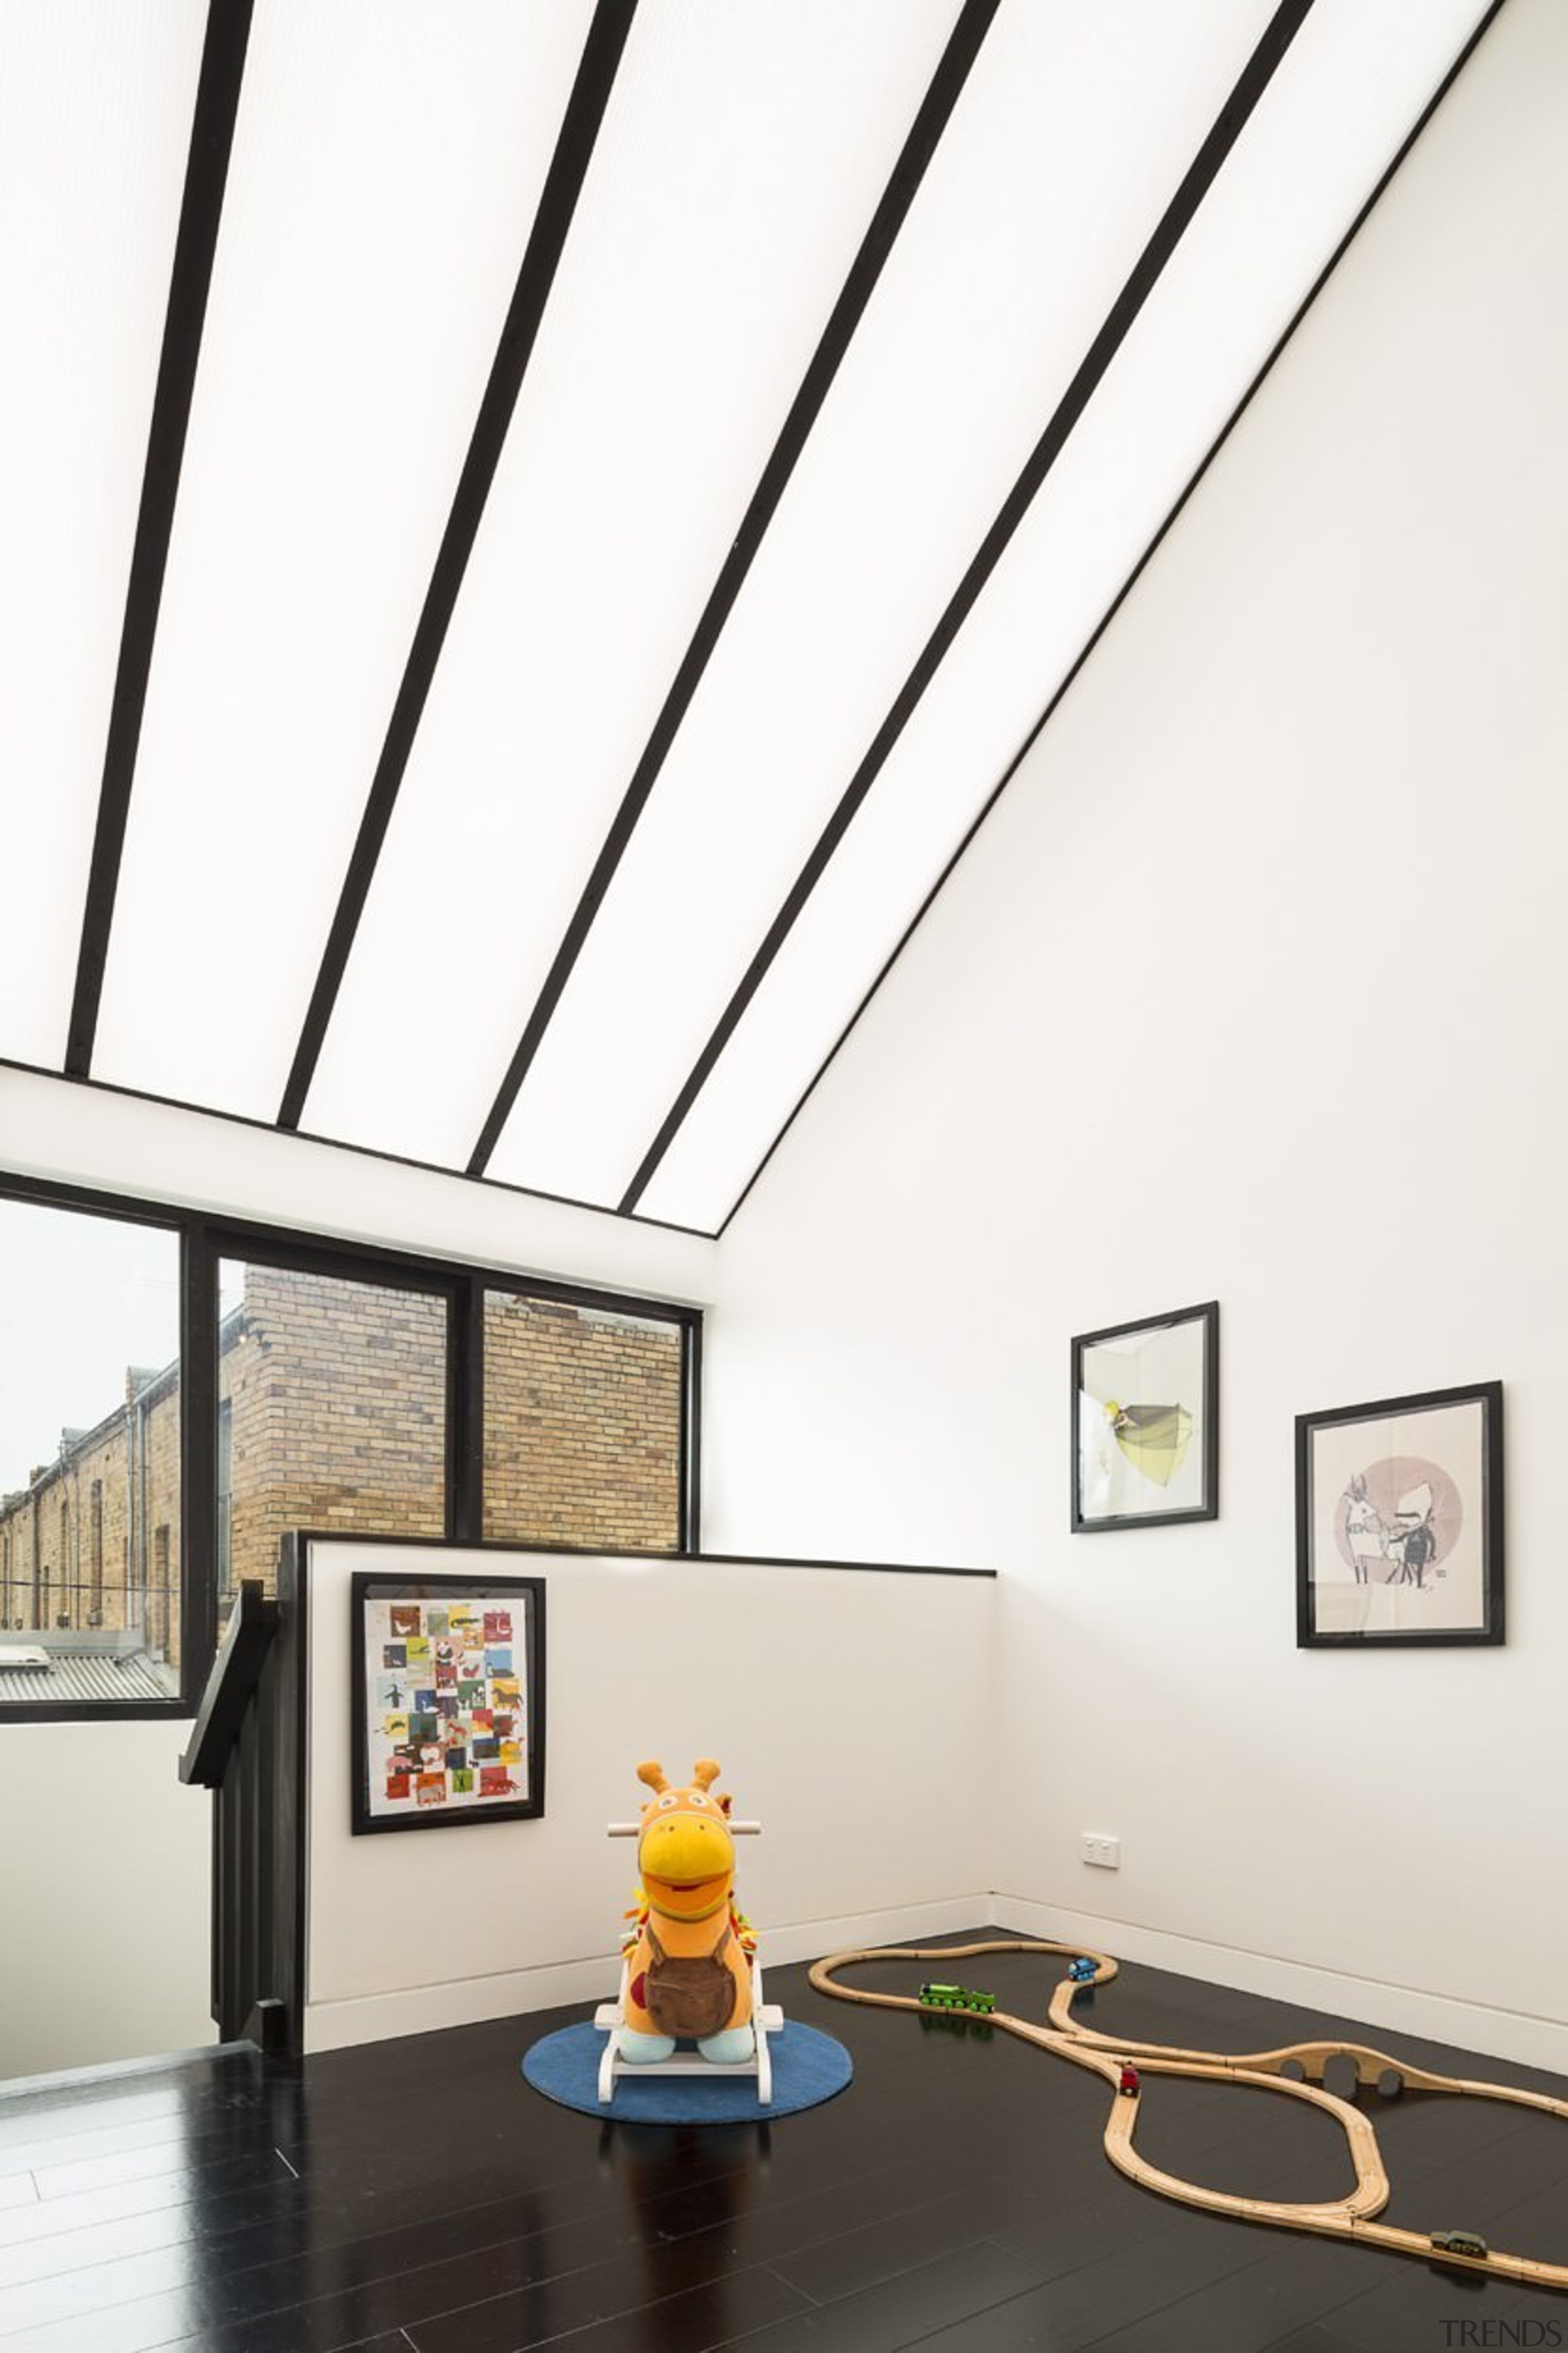 There's no shortage of natural light in this ceiling, daylighting, house, interior design, product design, tourist attraction, white